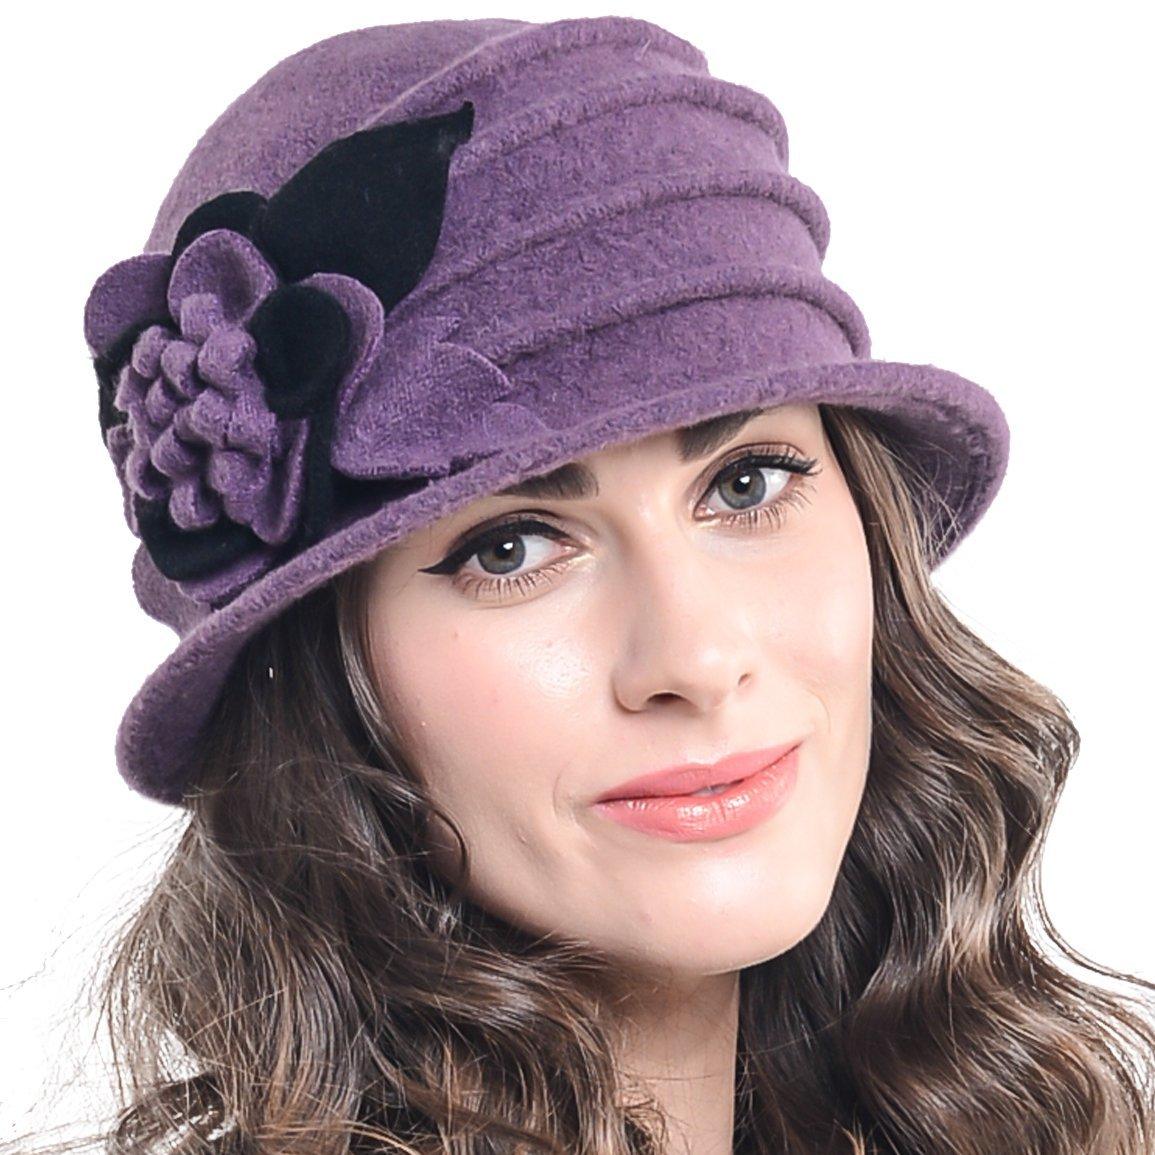 Retro Women Floral Trimmed Wool Blend Cloche Winter Hat (Purple)